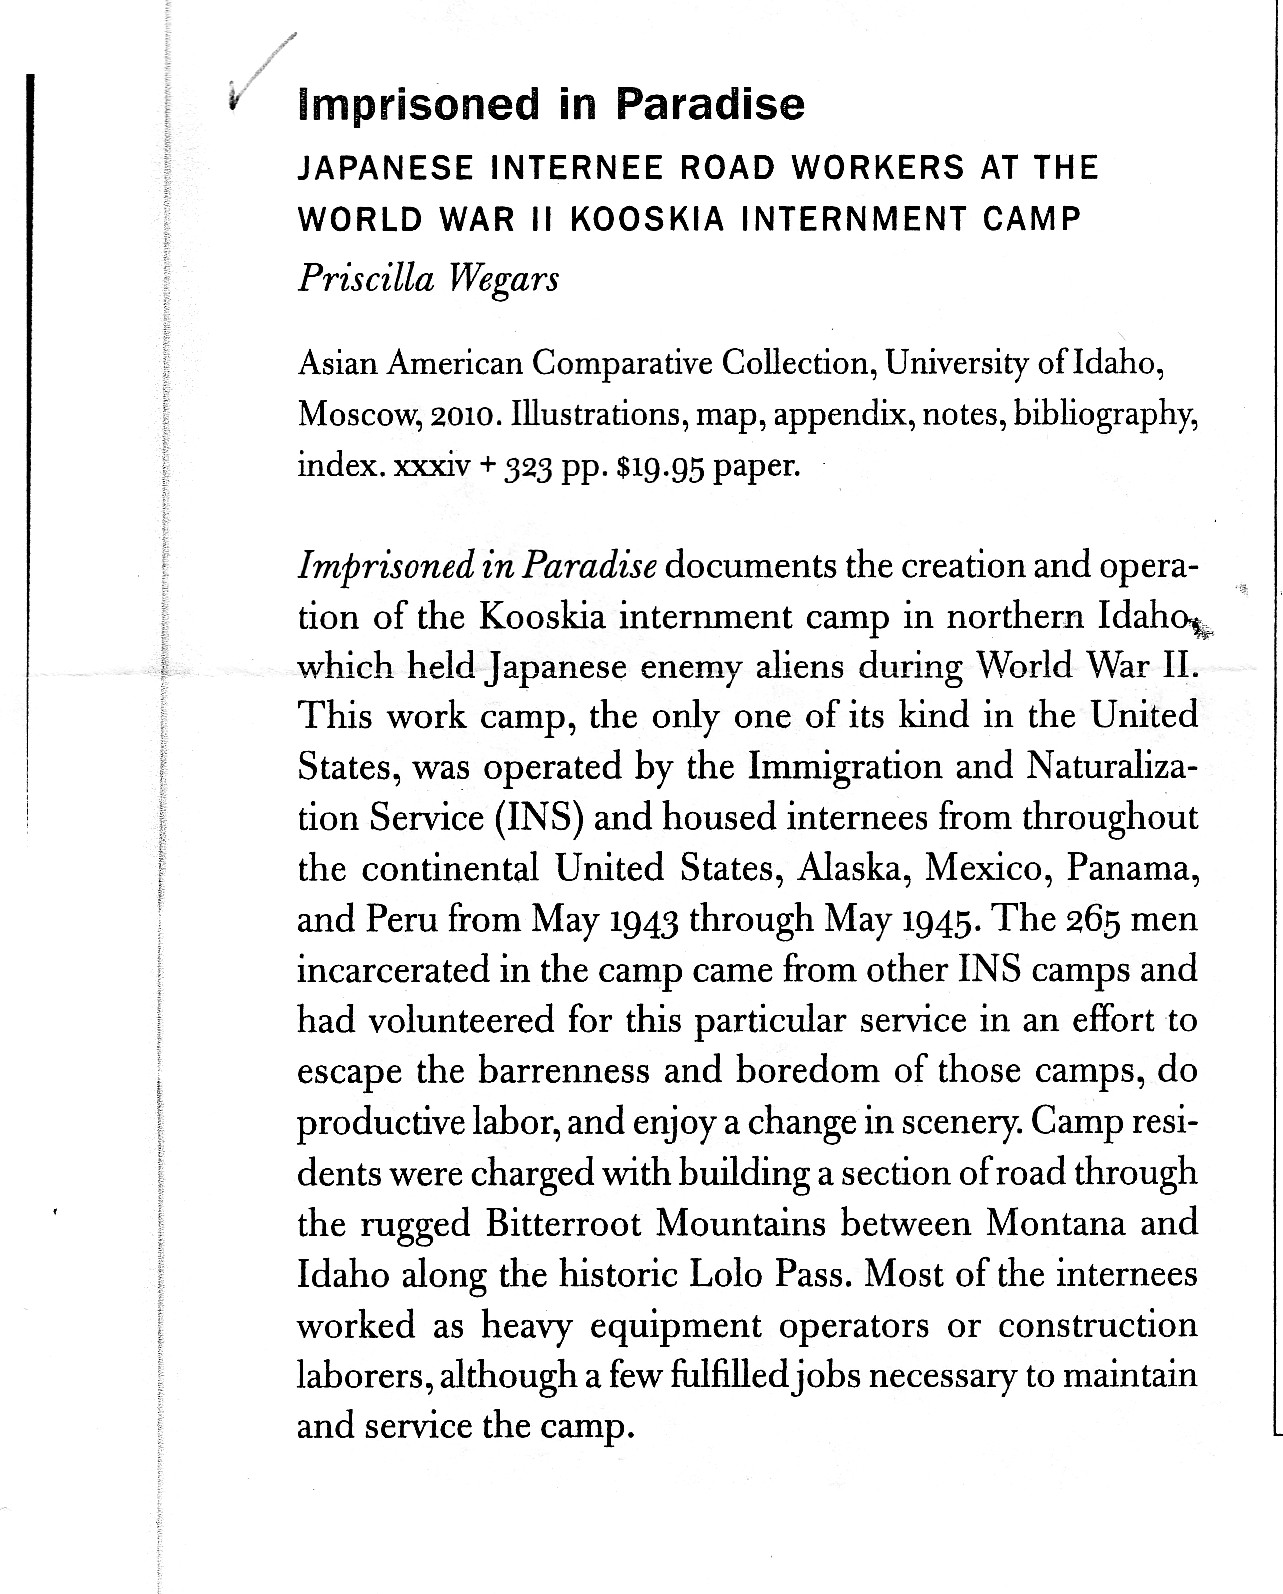 kooskia internment camp project a review of